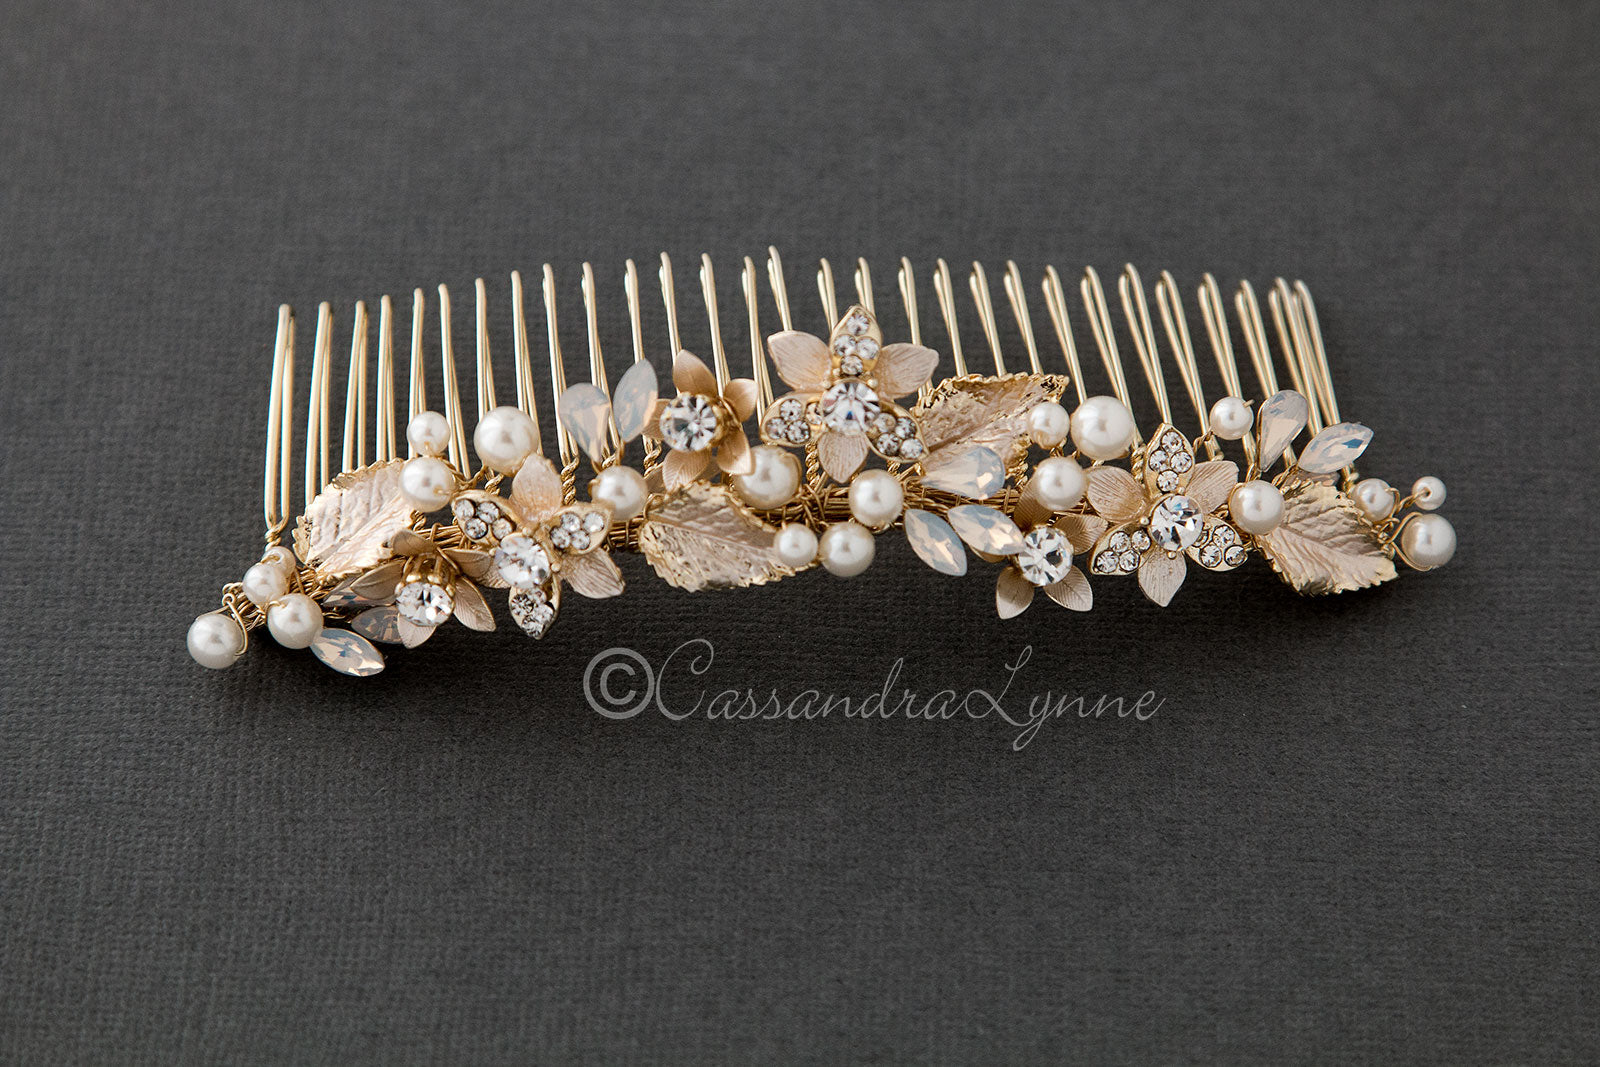 Light Gold Tiara Comb with White Opal Accents